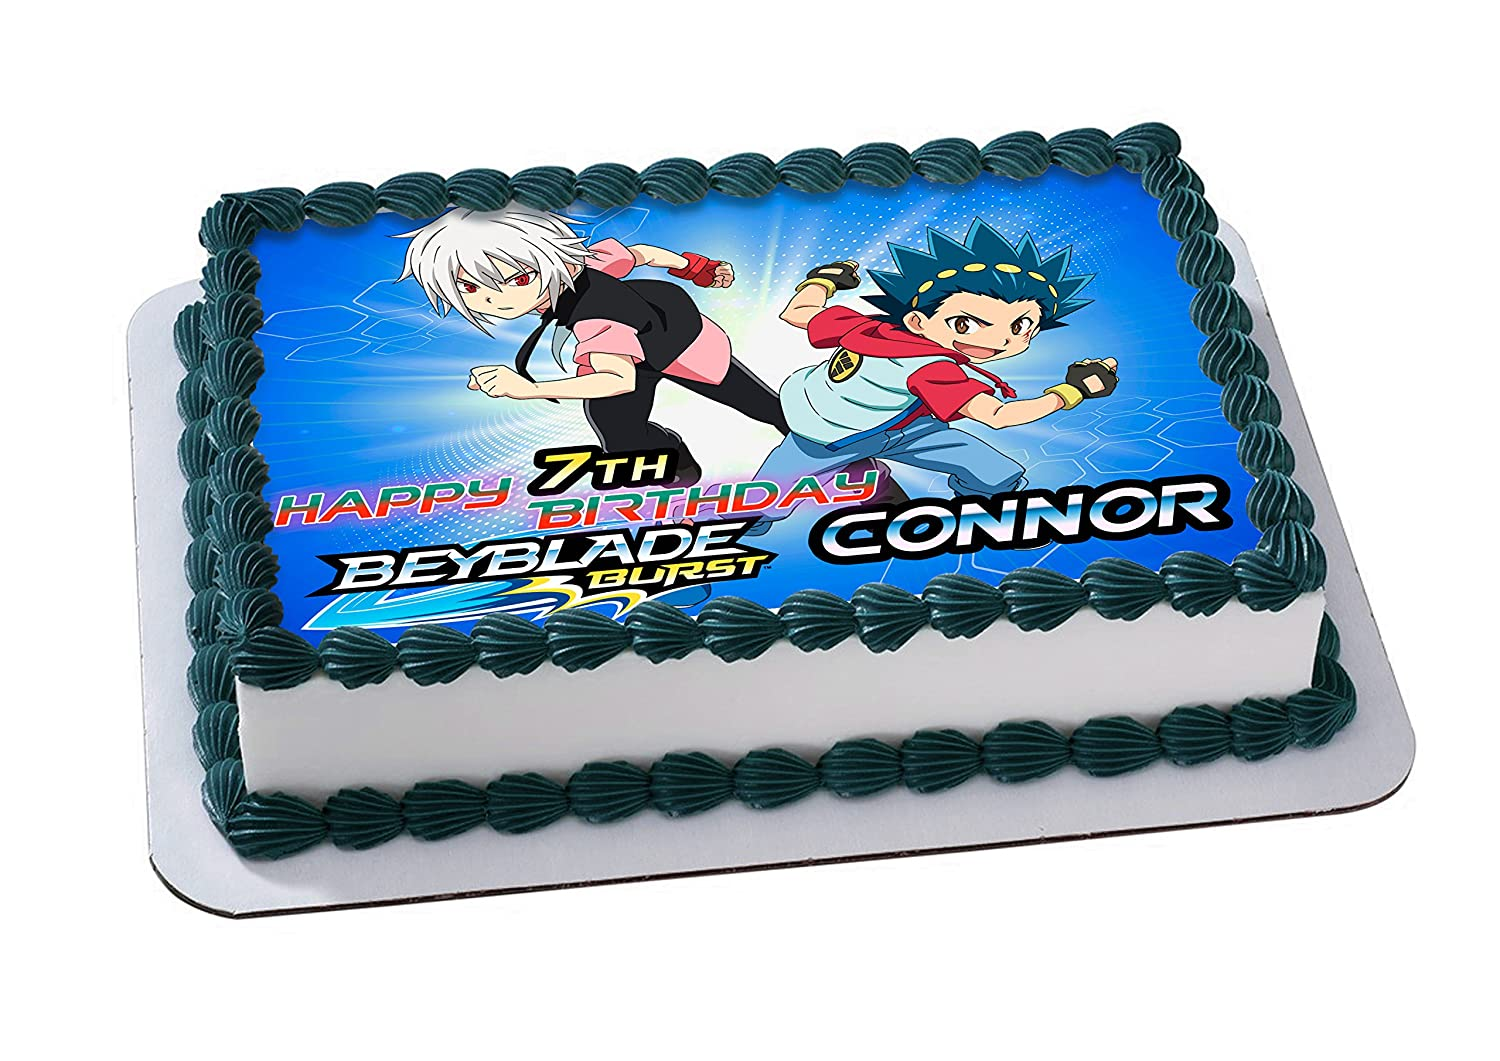 Beyblade Edible Cake Topper Personalized Birthday 1 4 Sheet Decoration Custom Party Sugar Frosting Transfer Fondant Image Best Quality